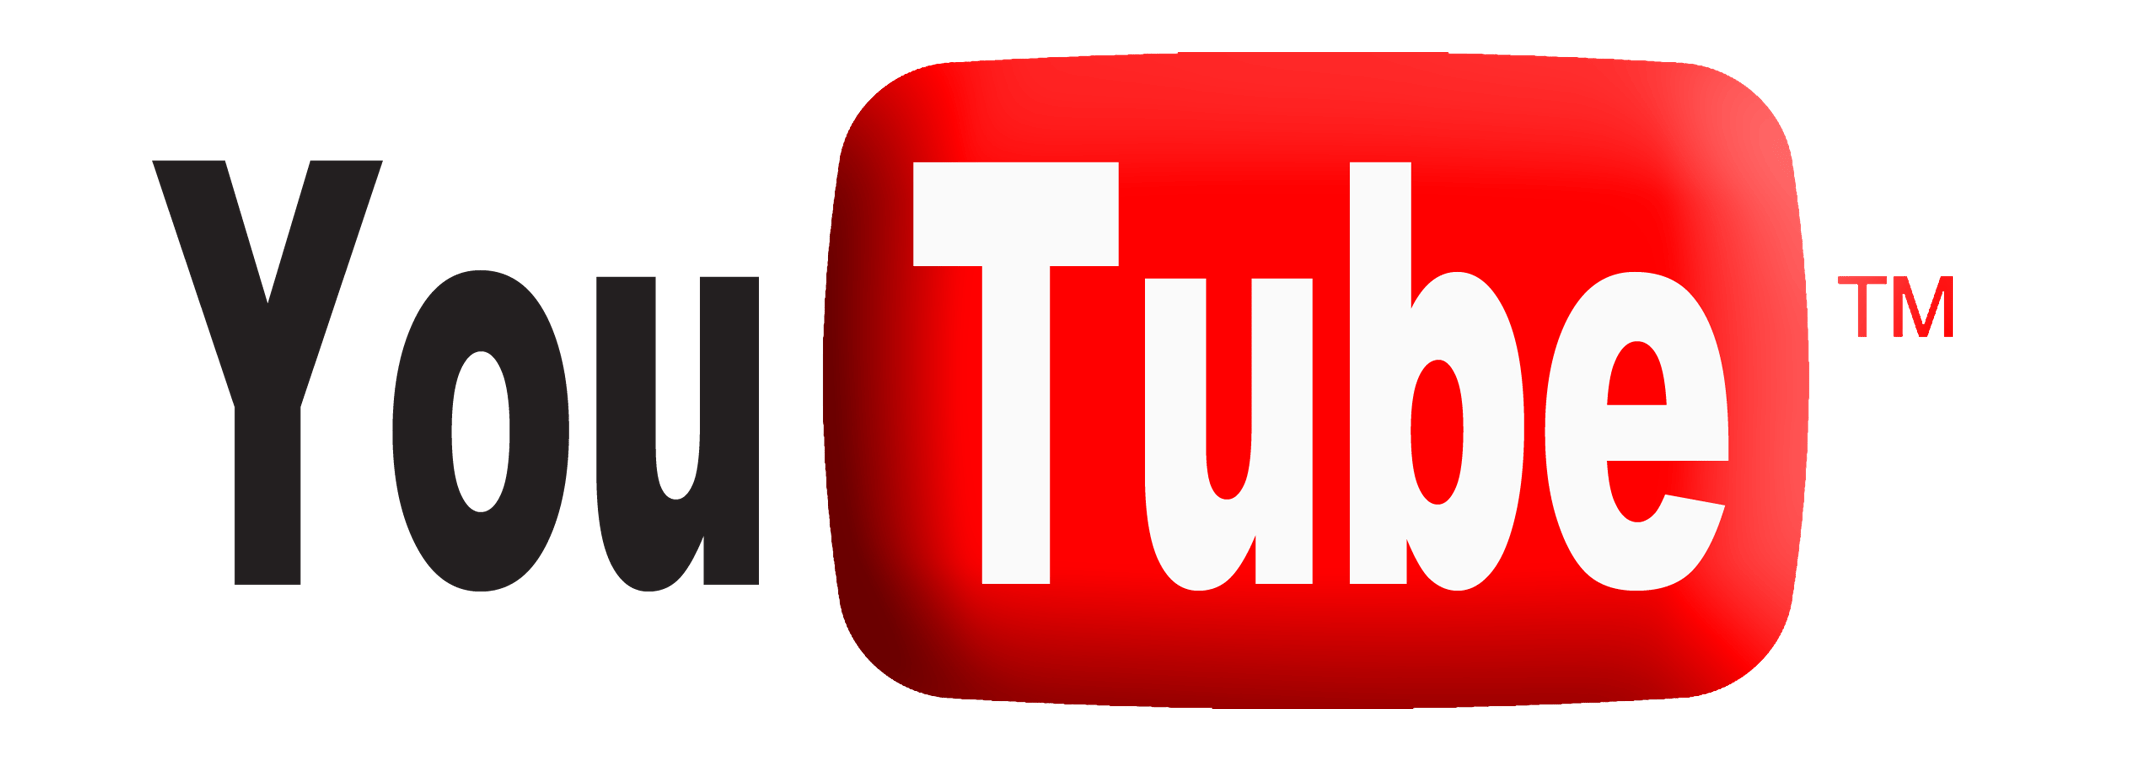 Hd Tube Youtube Png Images Free Download